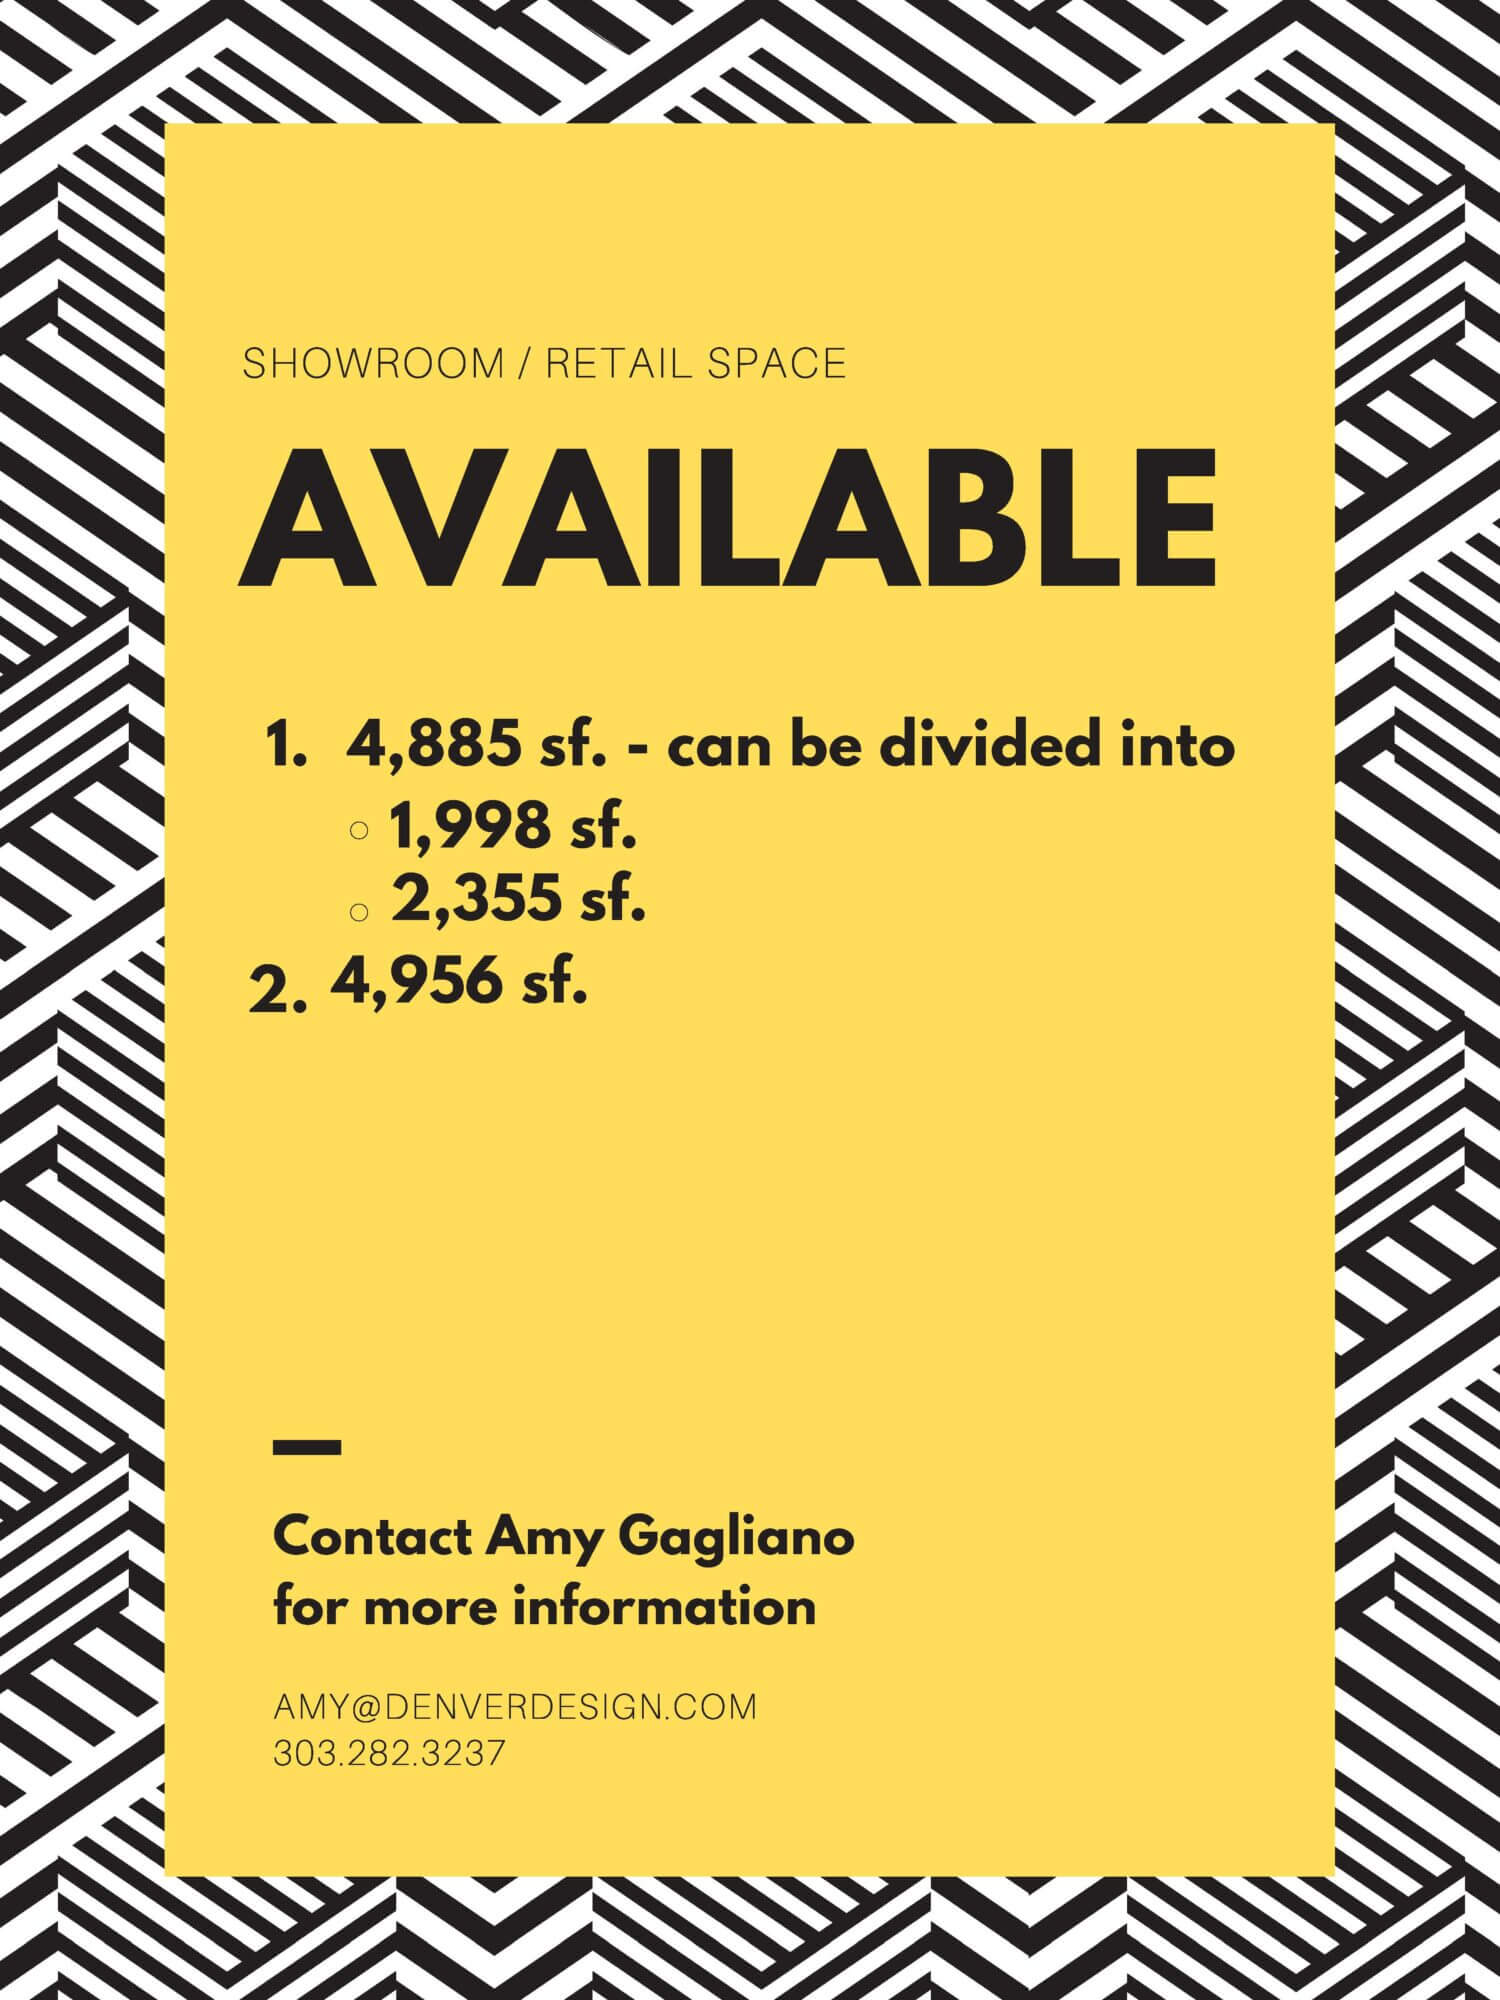 Showroom space available